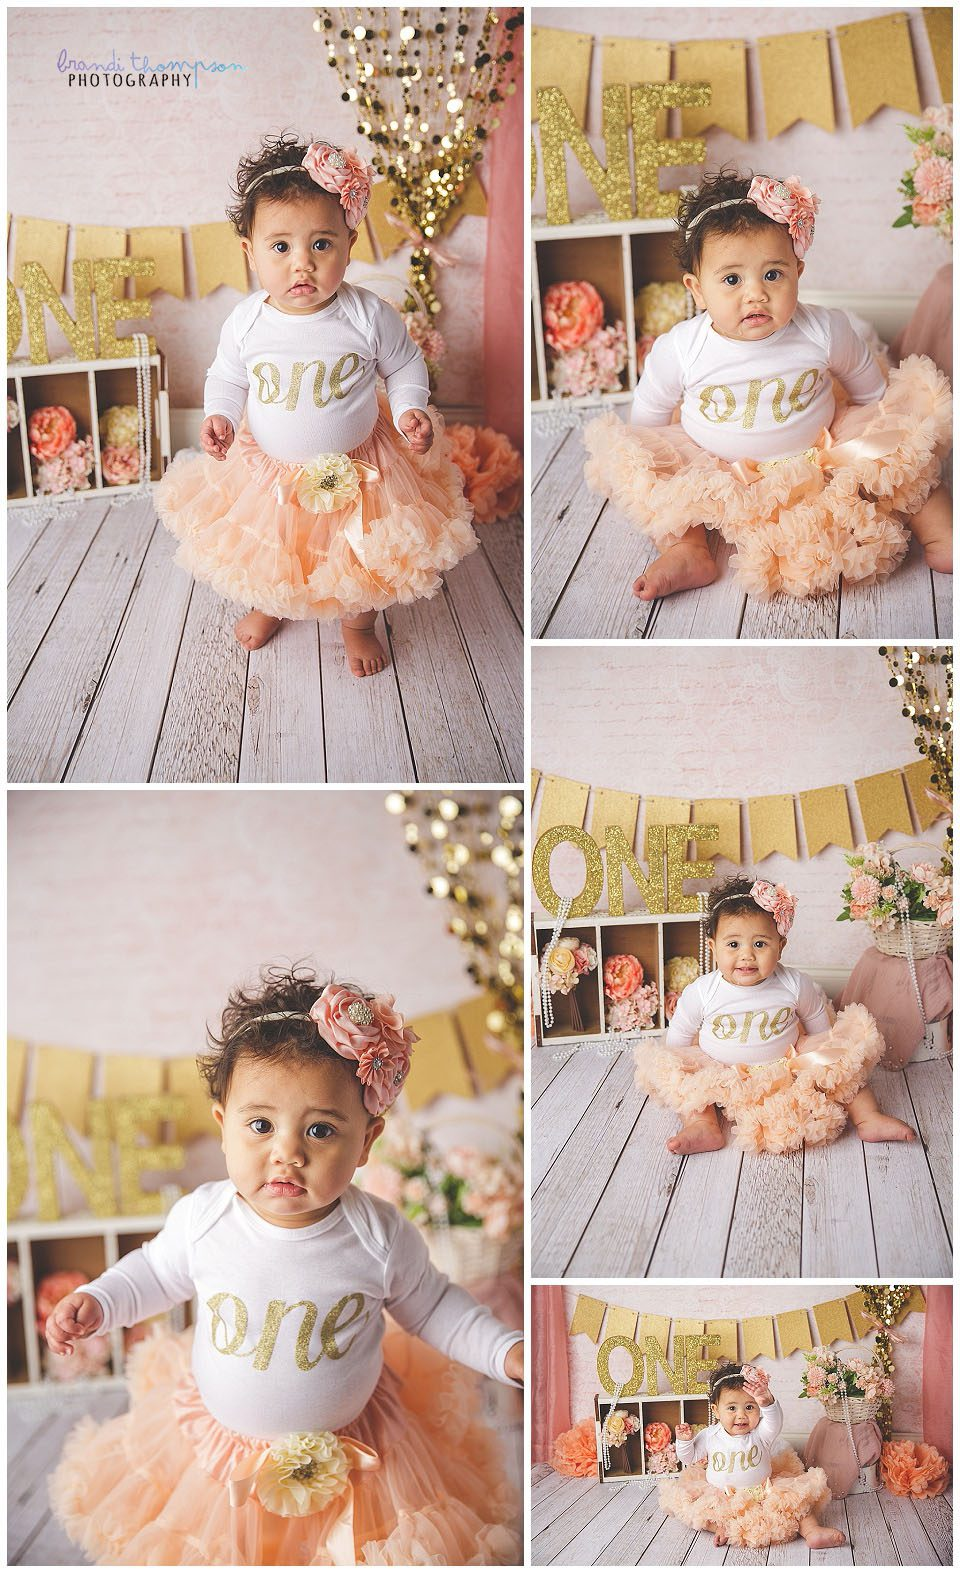 studio cake smash session with pink, peach, white and gold, and flowers. A medium skinned baby girl with curly brown hair